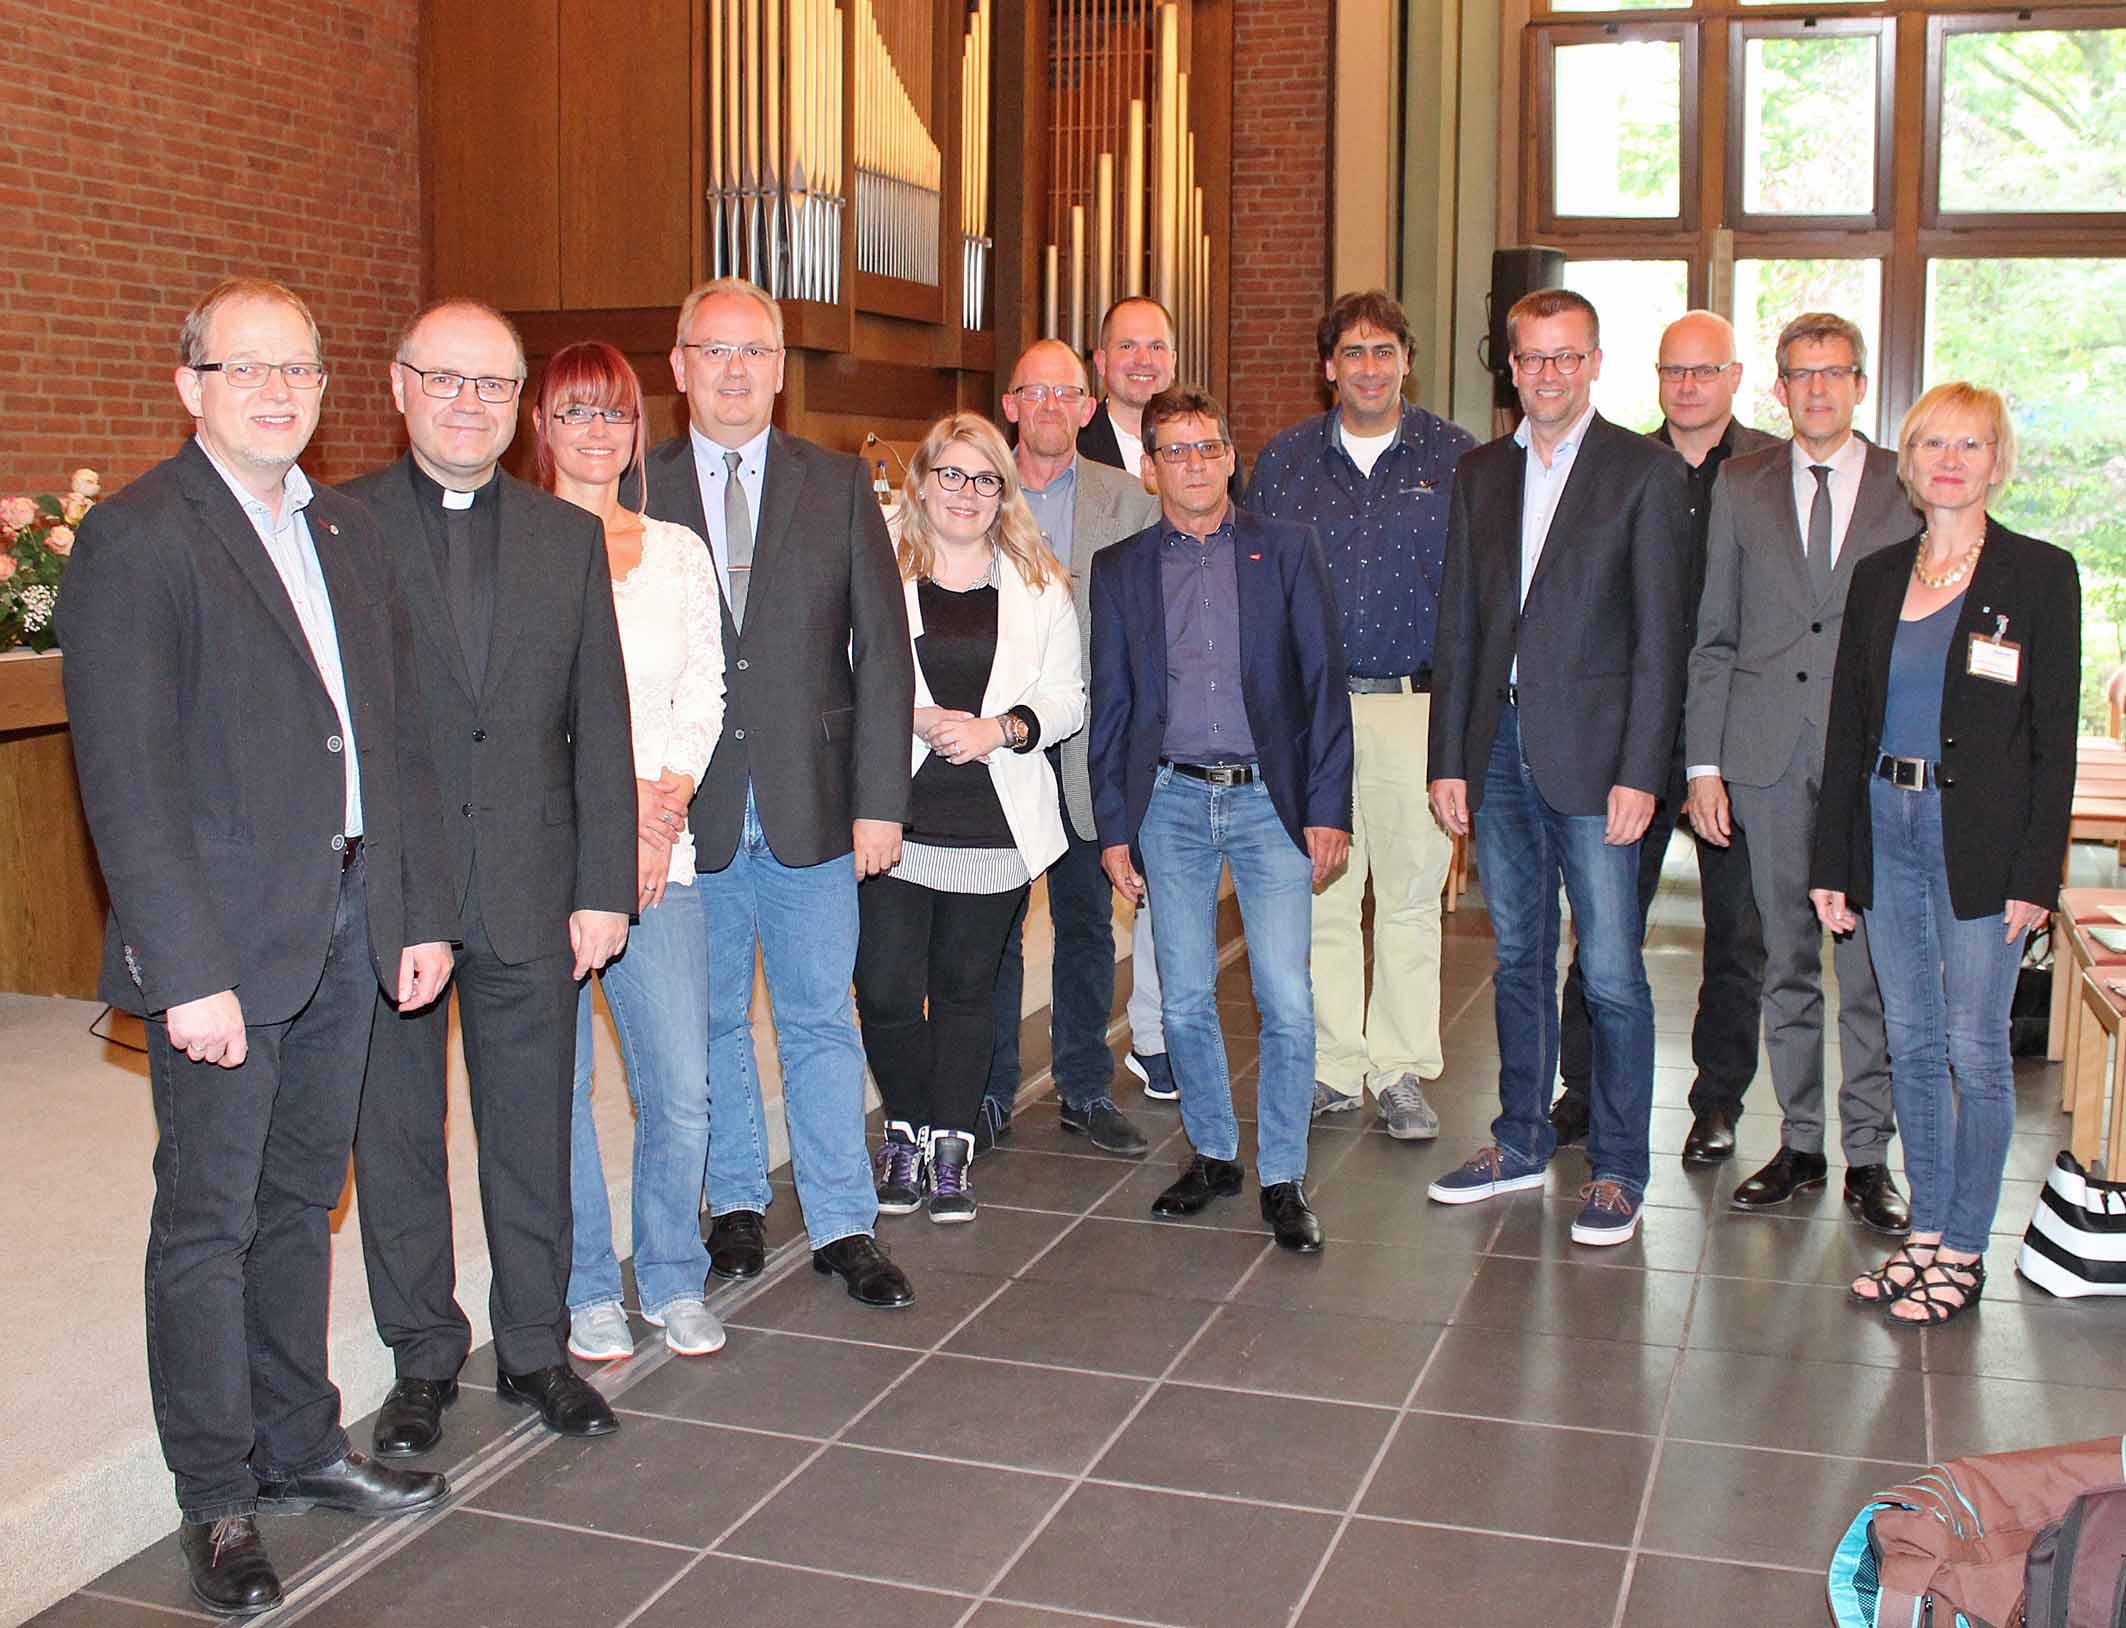 2017 07 05 Diskussion Asyl Gruppe kl